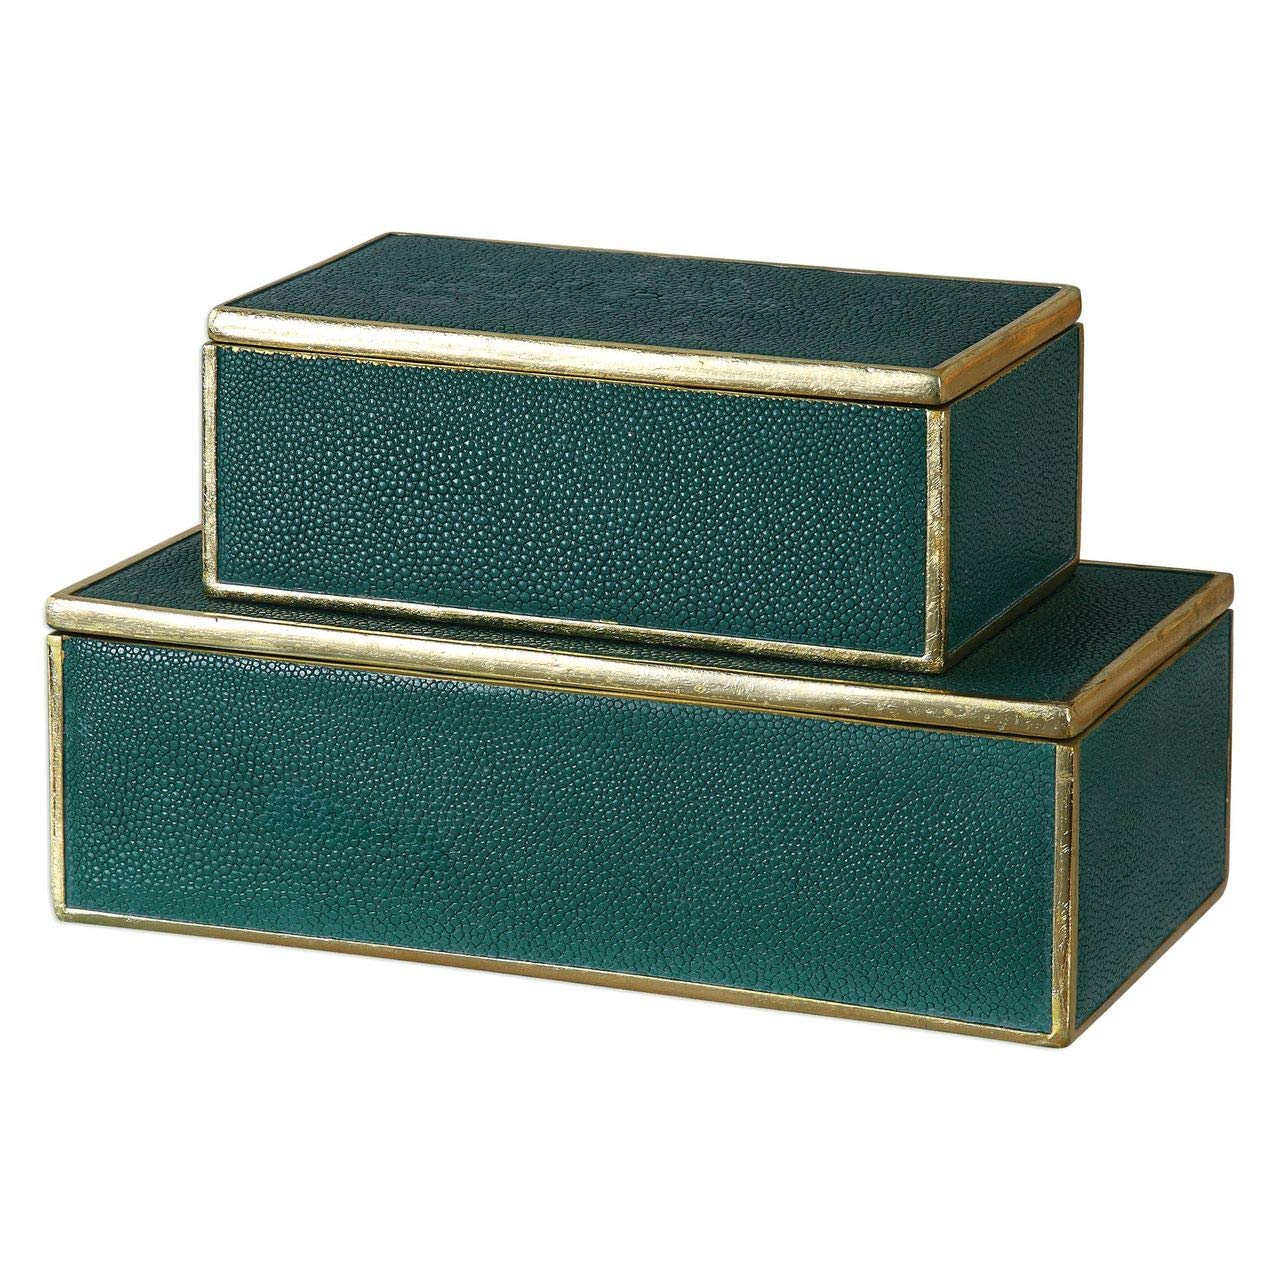 Uttermost 2-Pc Decorative Box Set in Emerald Green